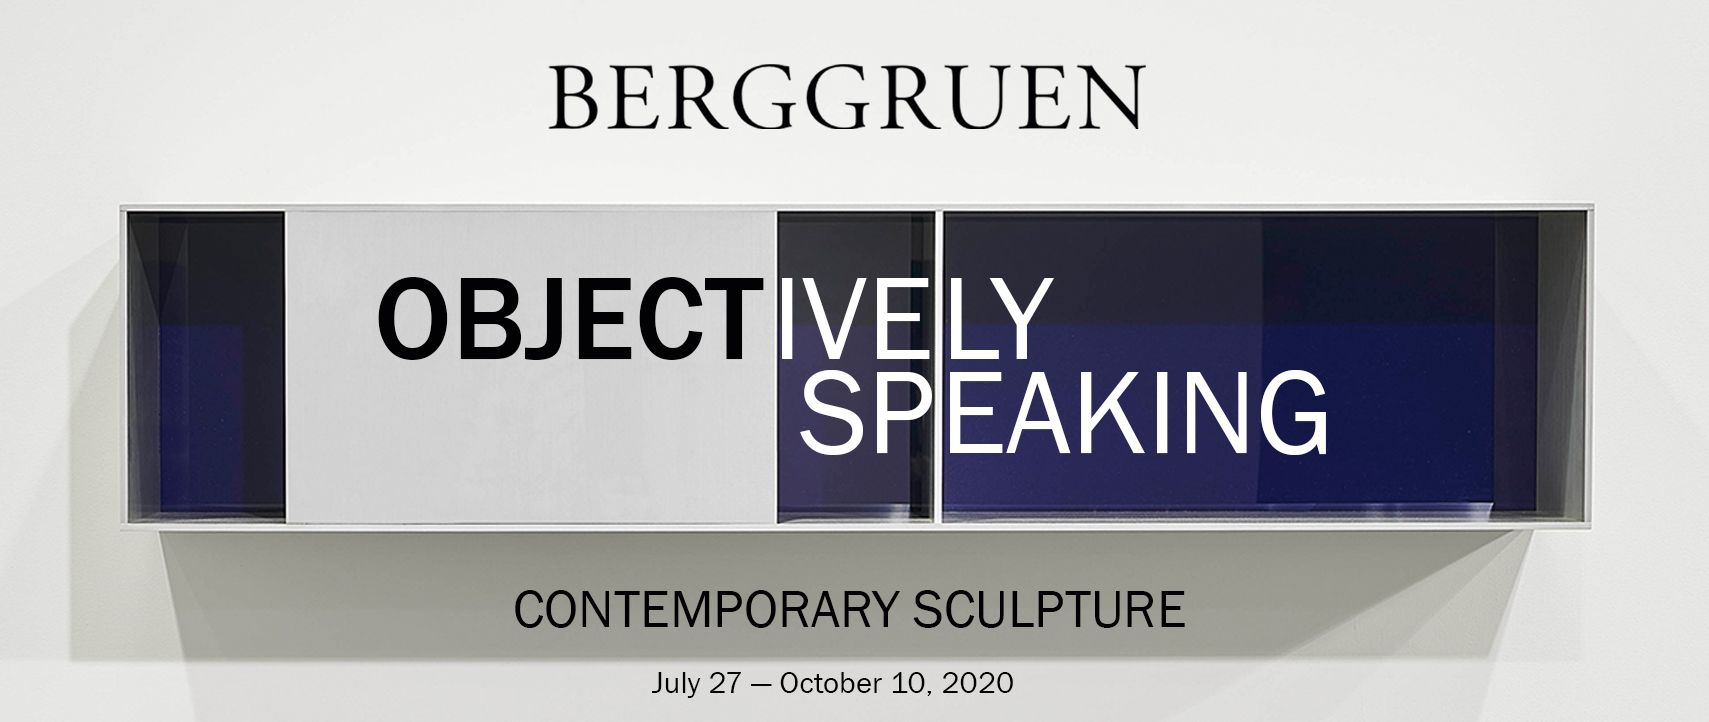 OBJECTively Speaking: Contemporary Sculpture